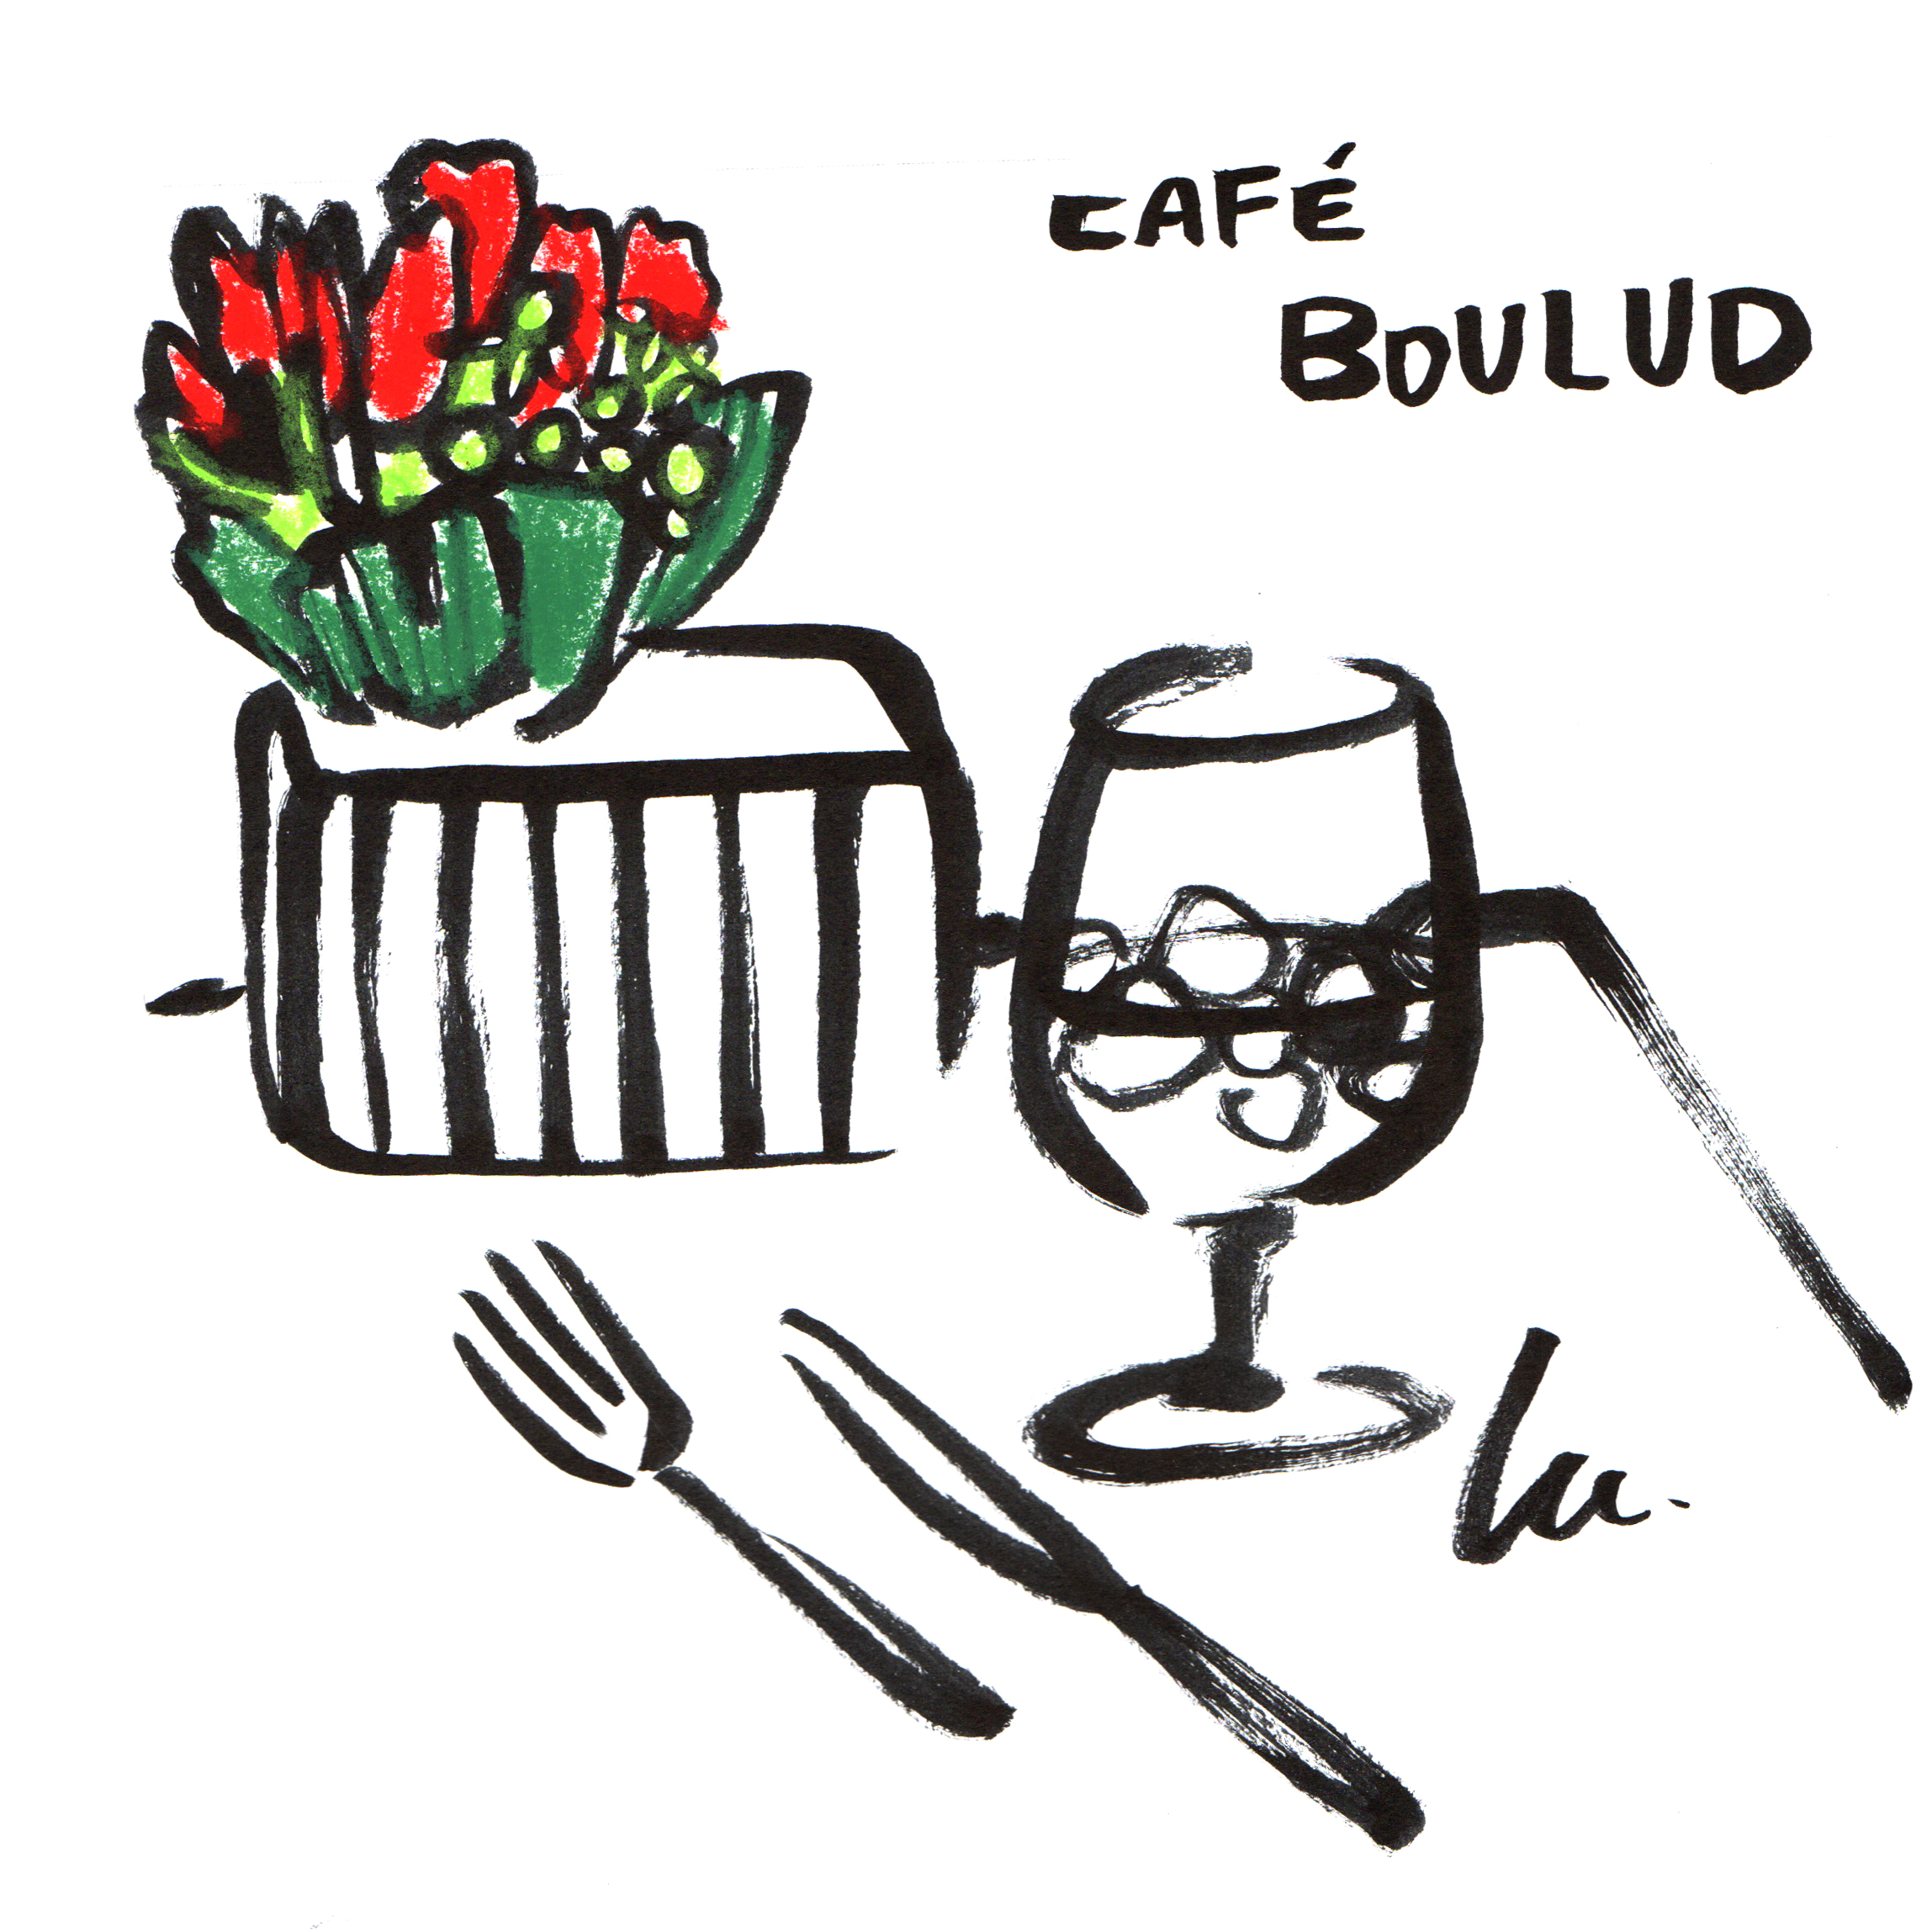 Cafe Boulud 1.jpeg